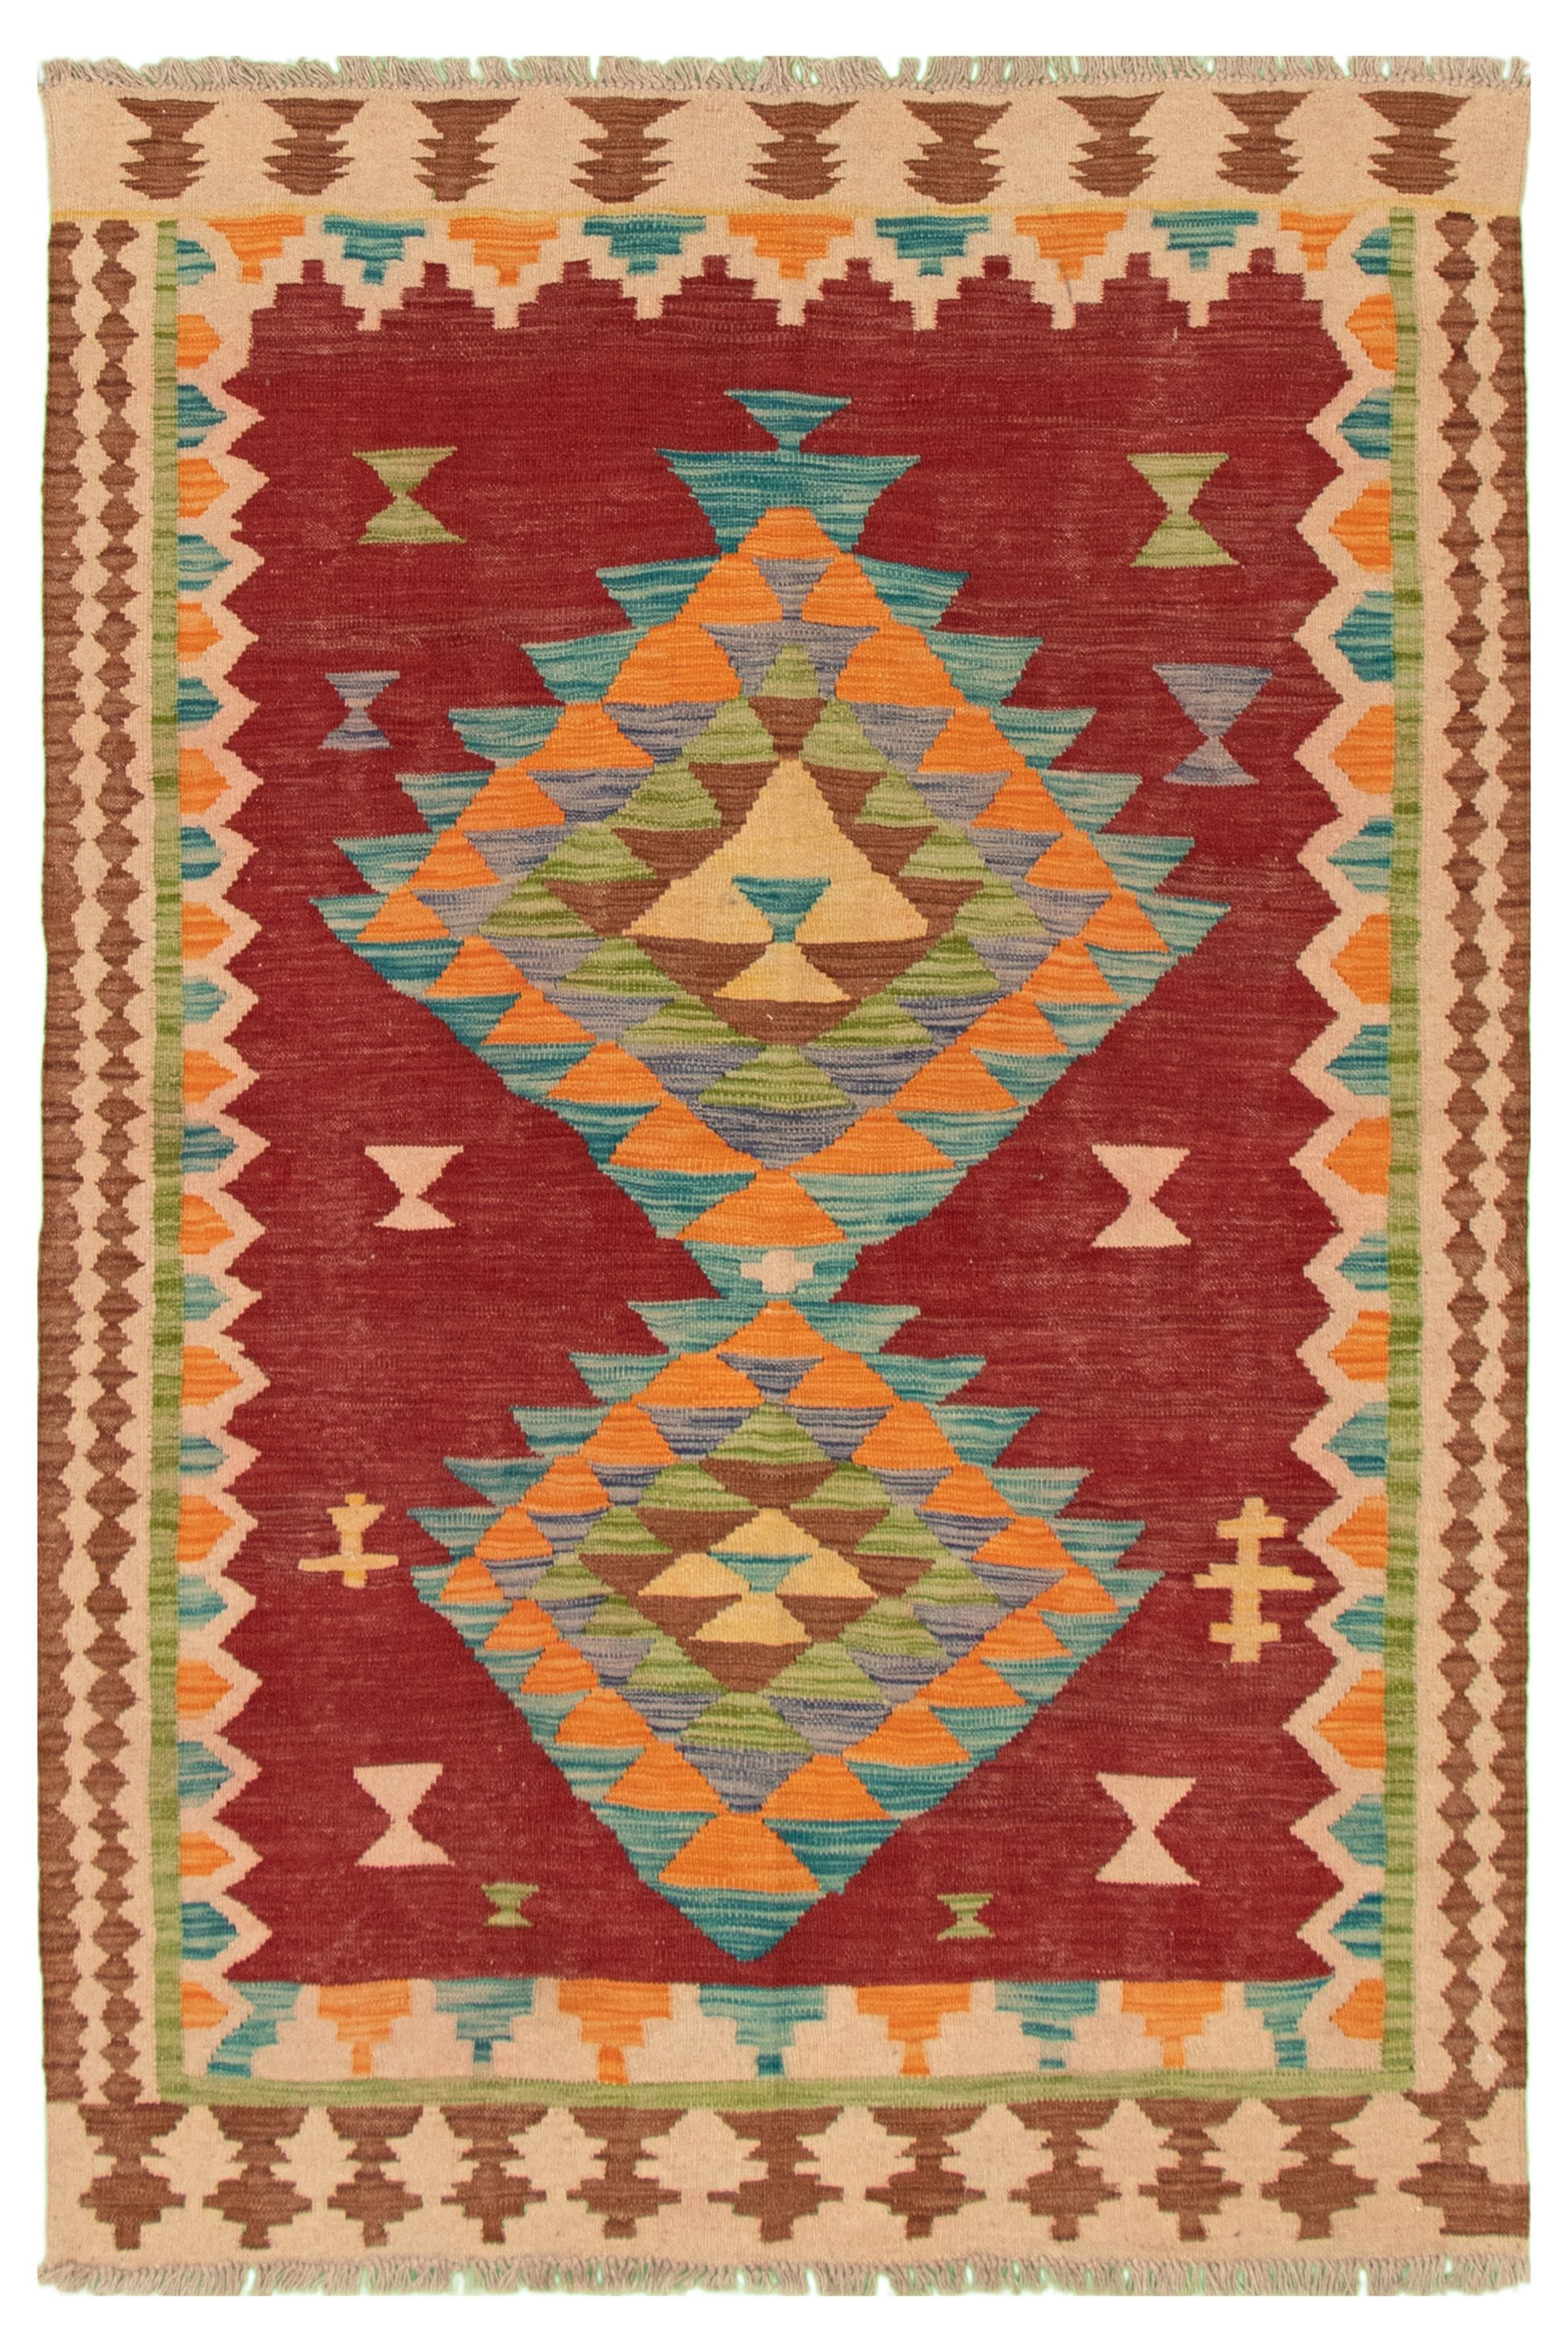 "Hand woven Bold and Colorful  Dark Red Wool Kilim 4'10"" x 6'6"" Size: 4'10"" x 6'6"""